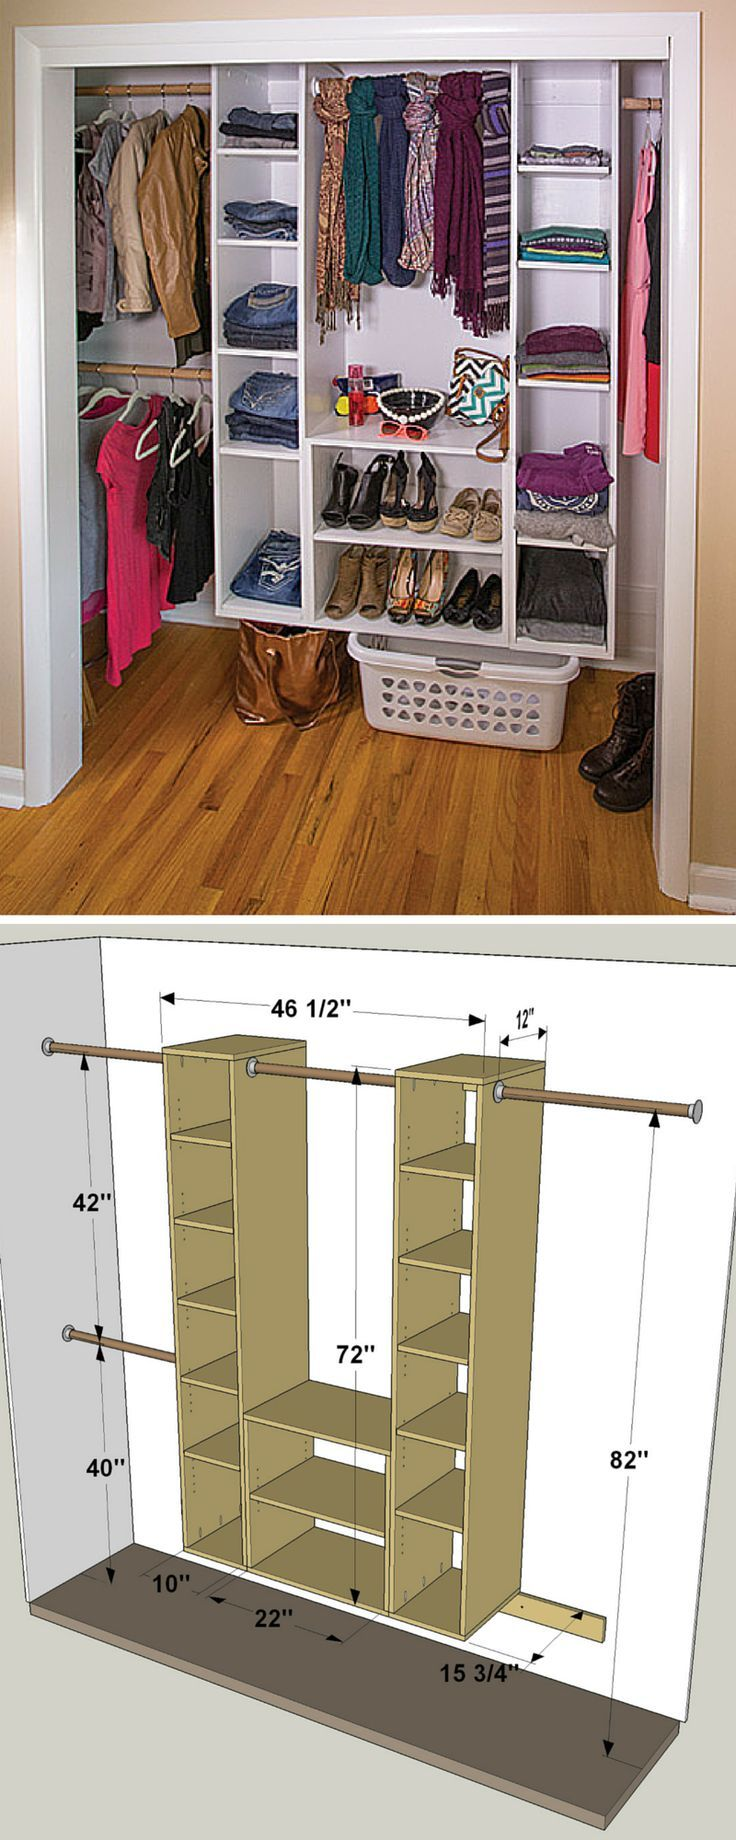 This organizer makes it easy to turn a chaotic closet into a clean, organized space. It's made up of a couple of basic pieces: Two towers with adjustable shelves, and wide cubby. You can build it as shown here or, because it's modular, arrange it in a different way to best suit your storage needs. Get the free DIY plans at http://buildsomething.com